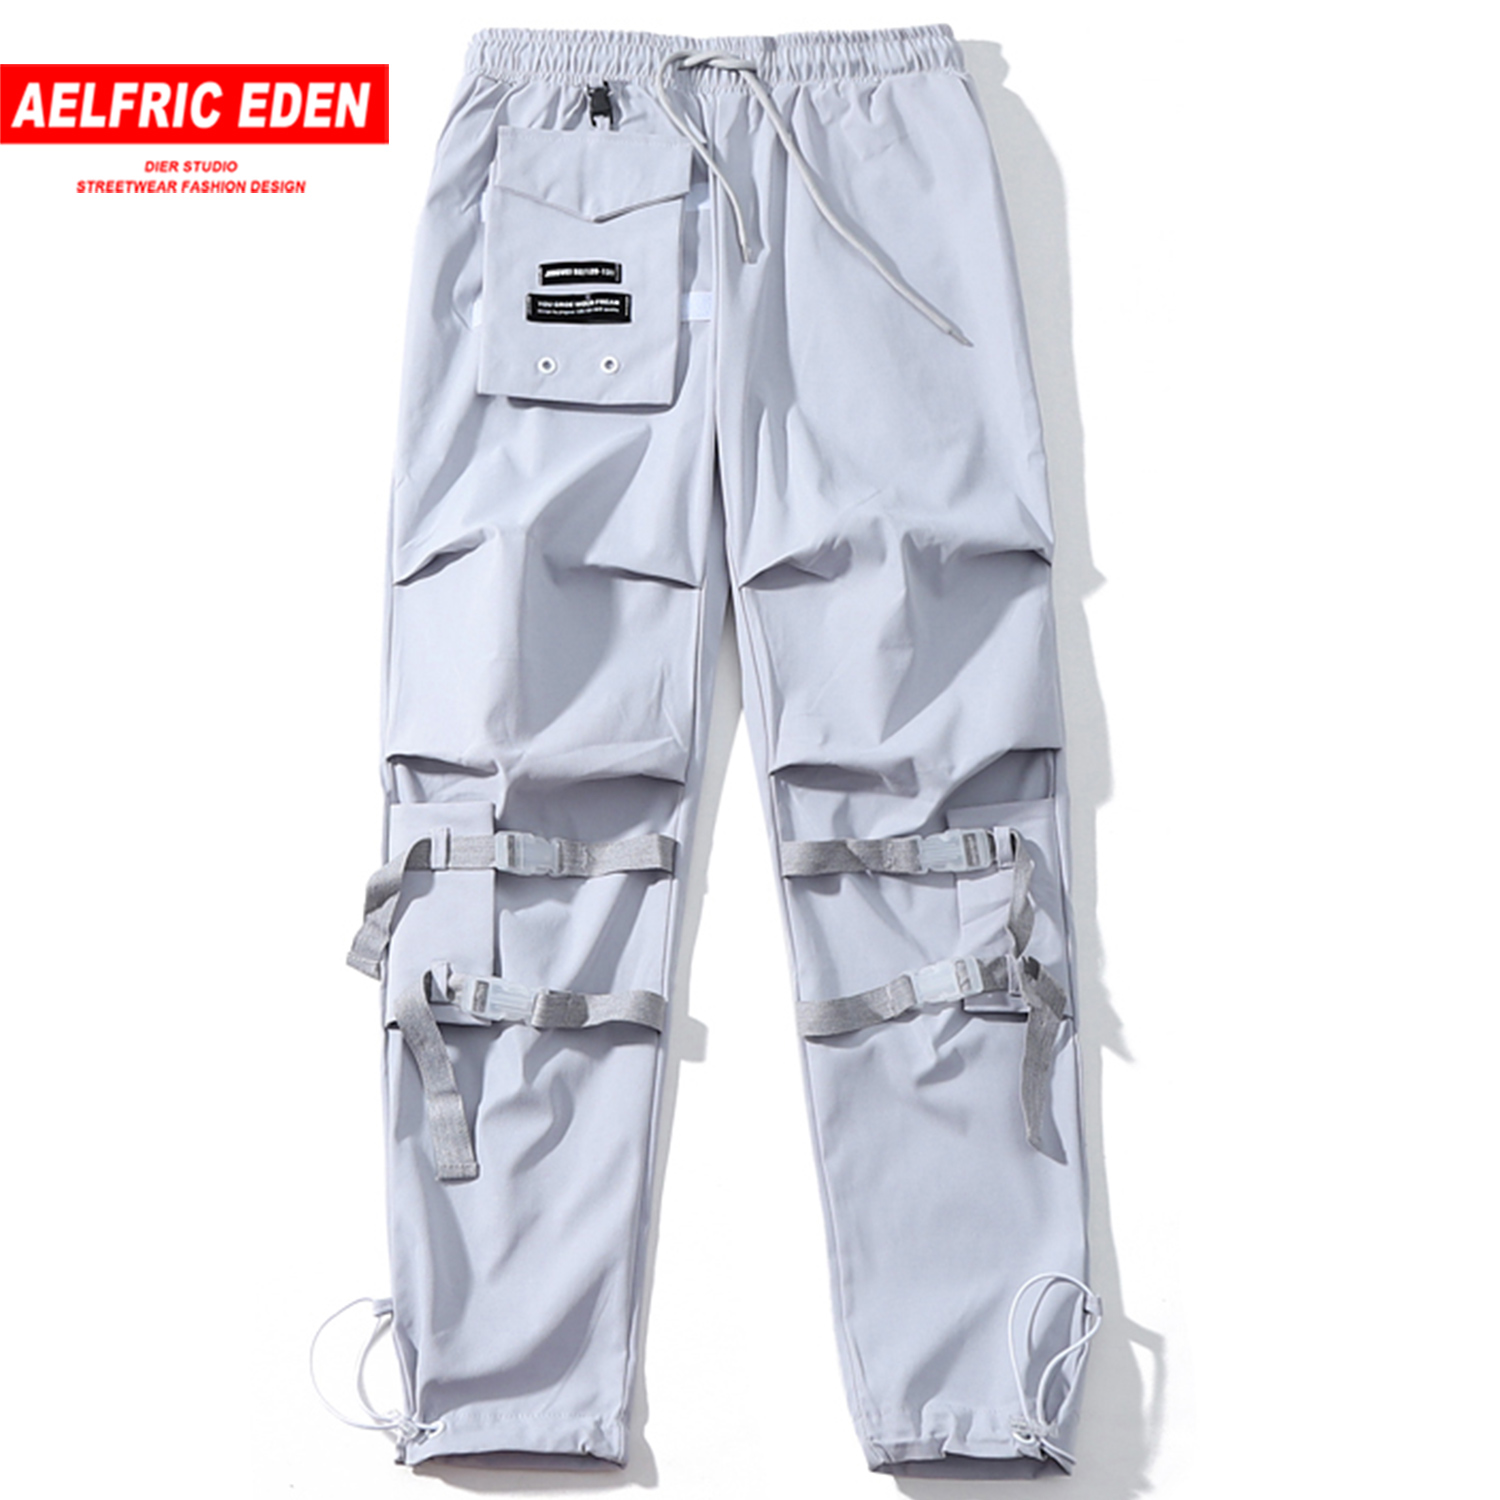 Aelfric Eden Velcro Pockets Hip Hop Cargo Pants Mens Streetwear Harajuku Casual Ribbons Male Harem Trousers Joggers Sweatpants